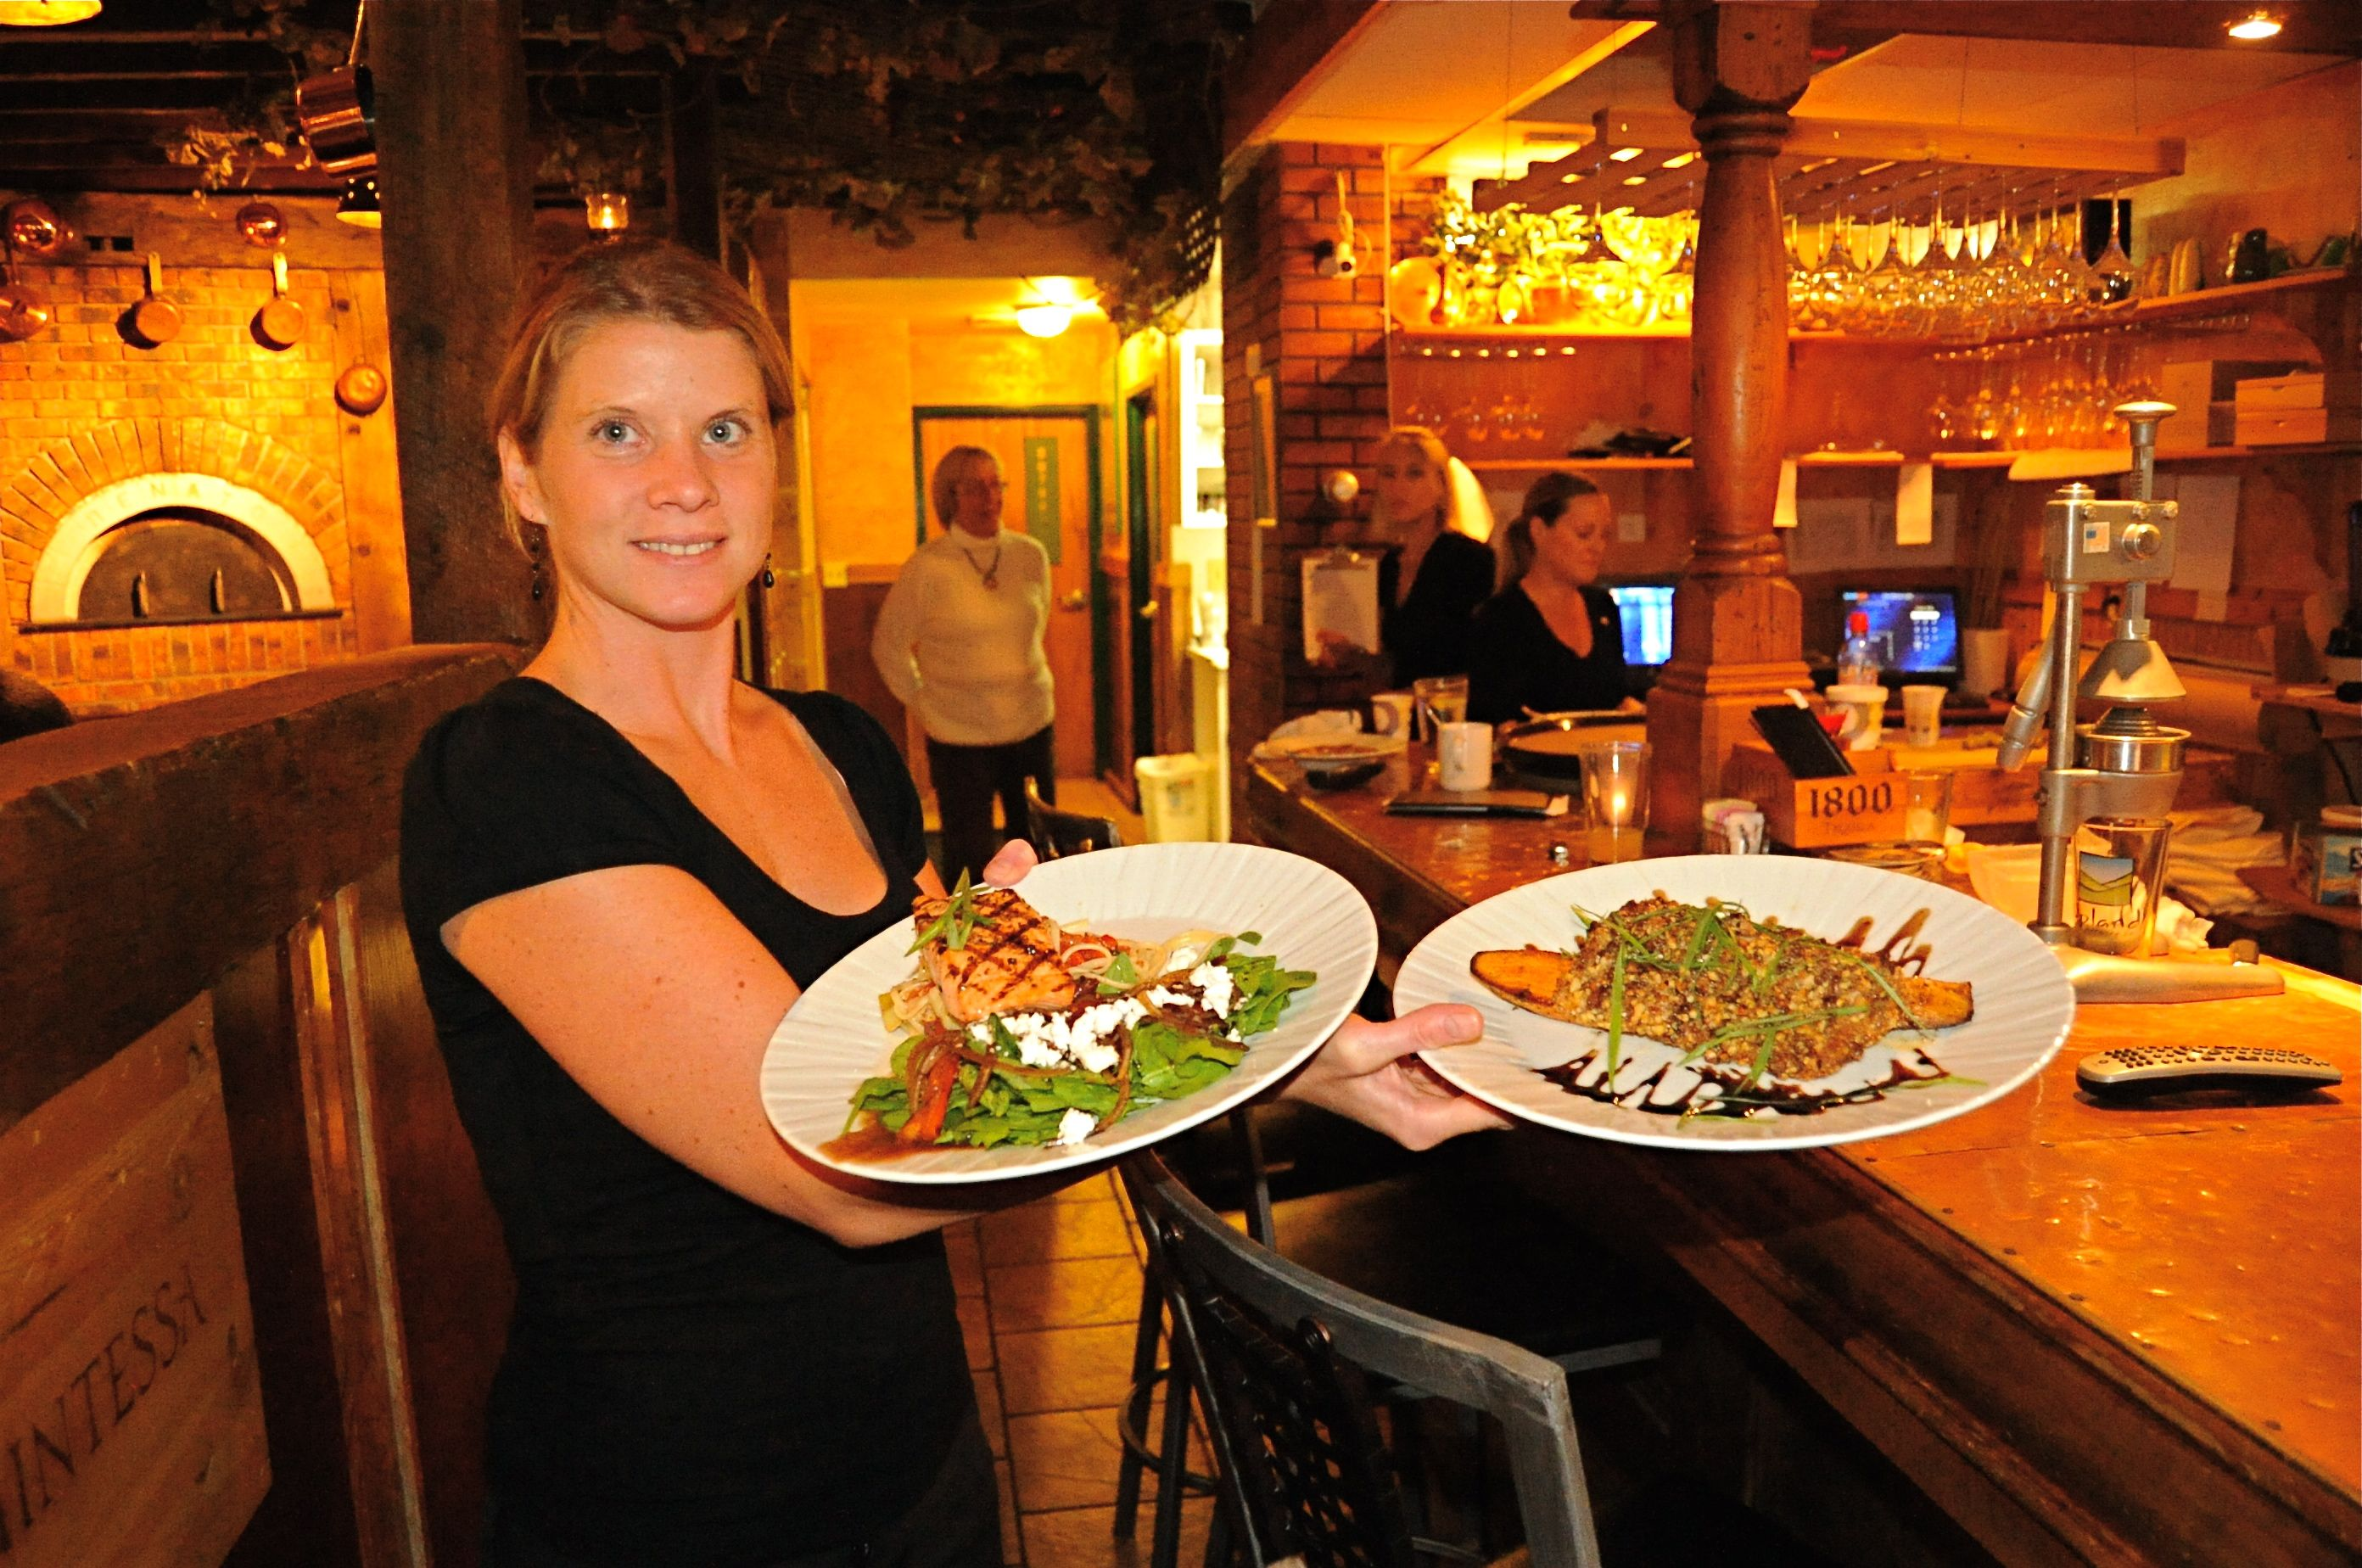 Corndance Cafe Culver In Named One Of Indiana 7 Outstanding Restaurants By Midwest Living Magazine